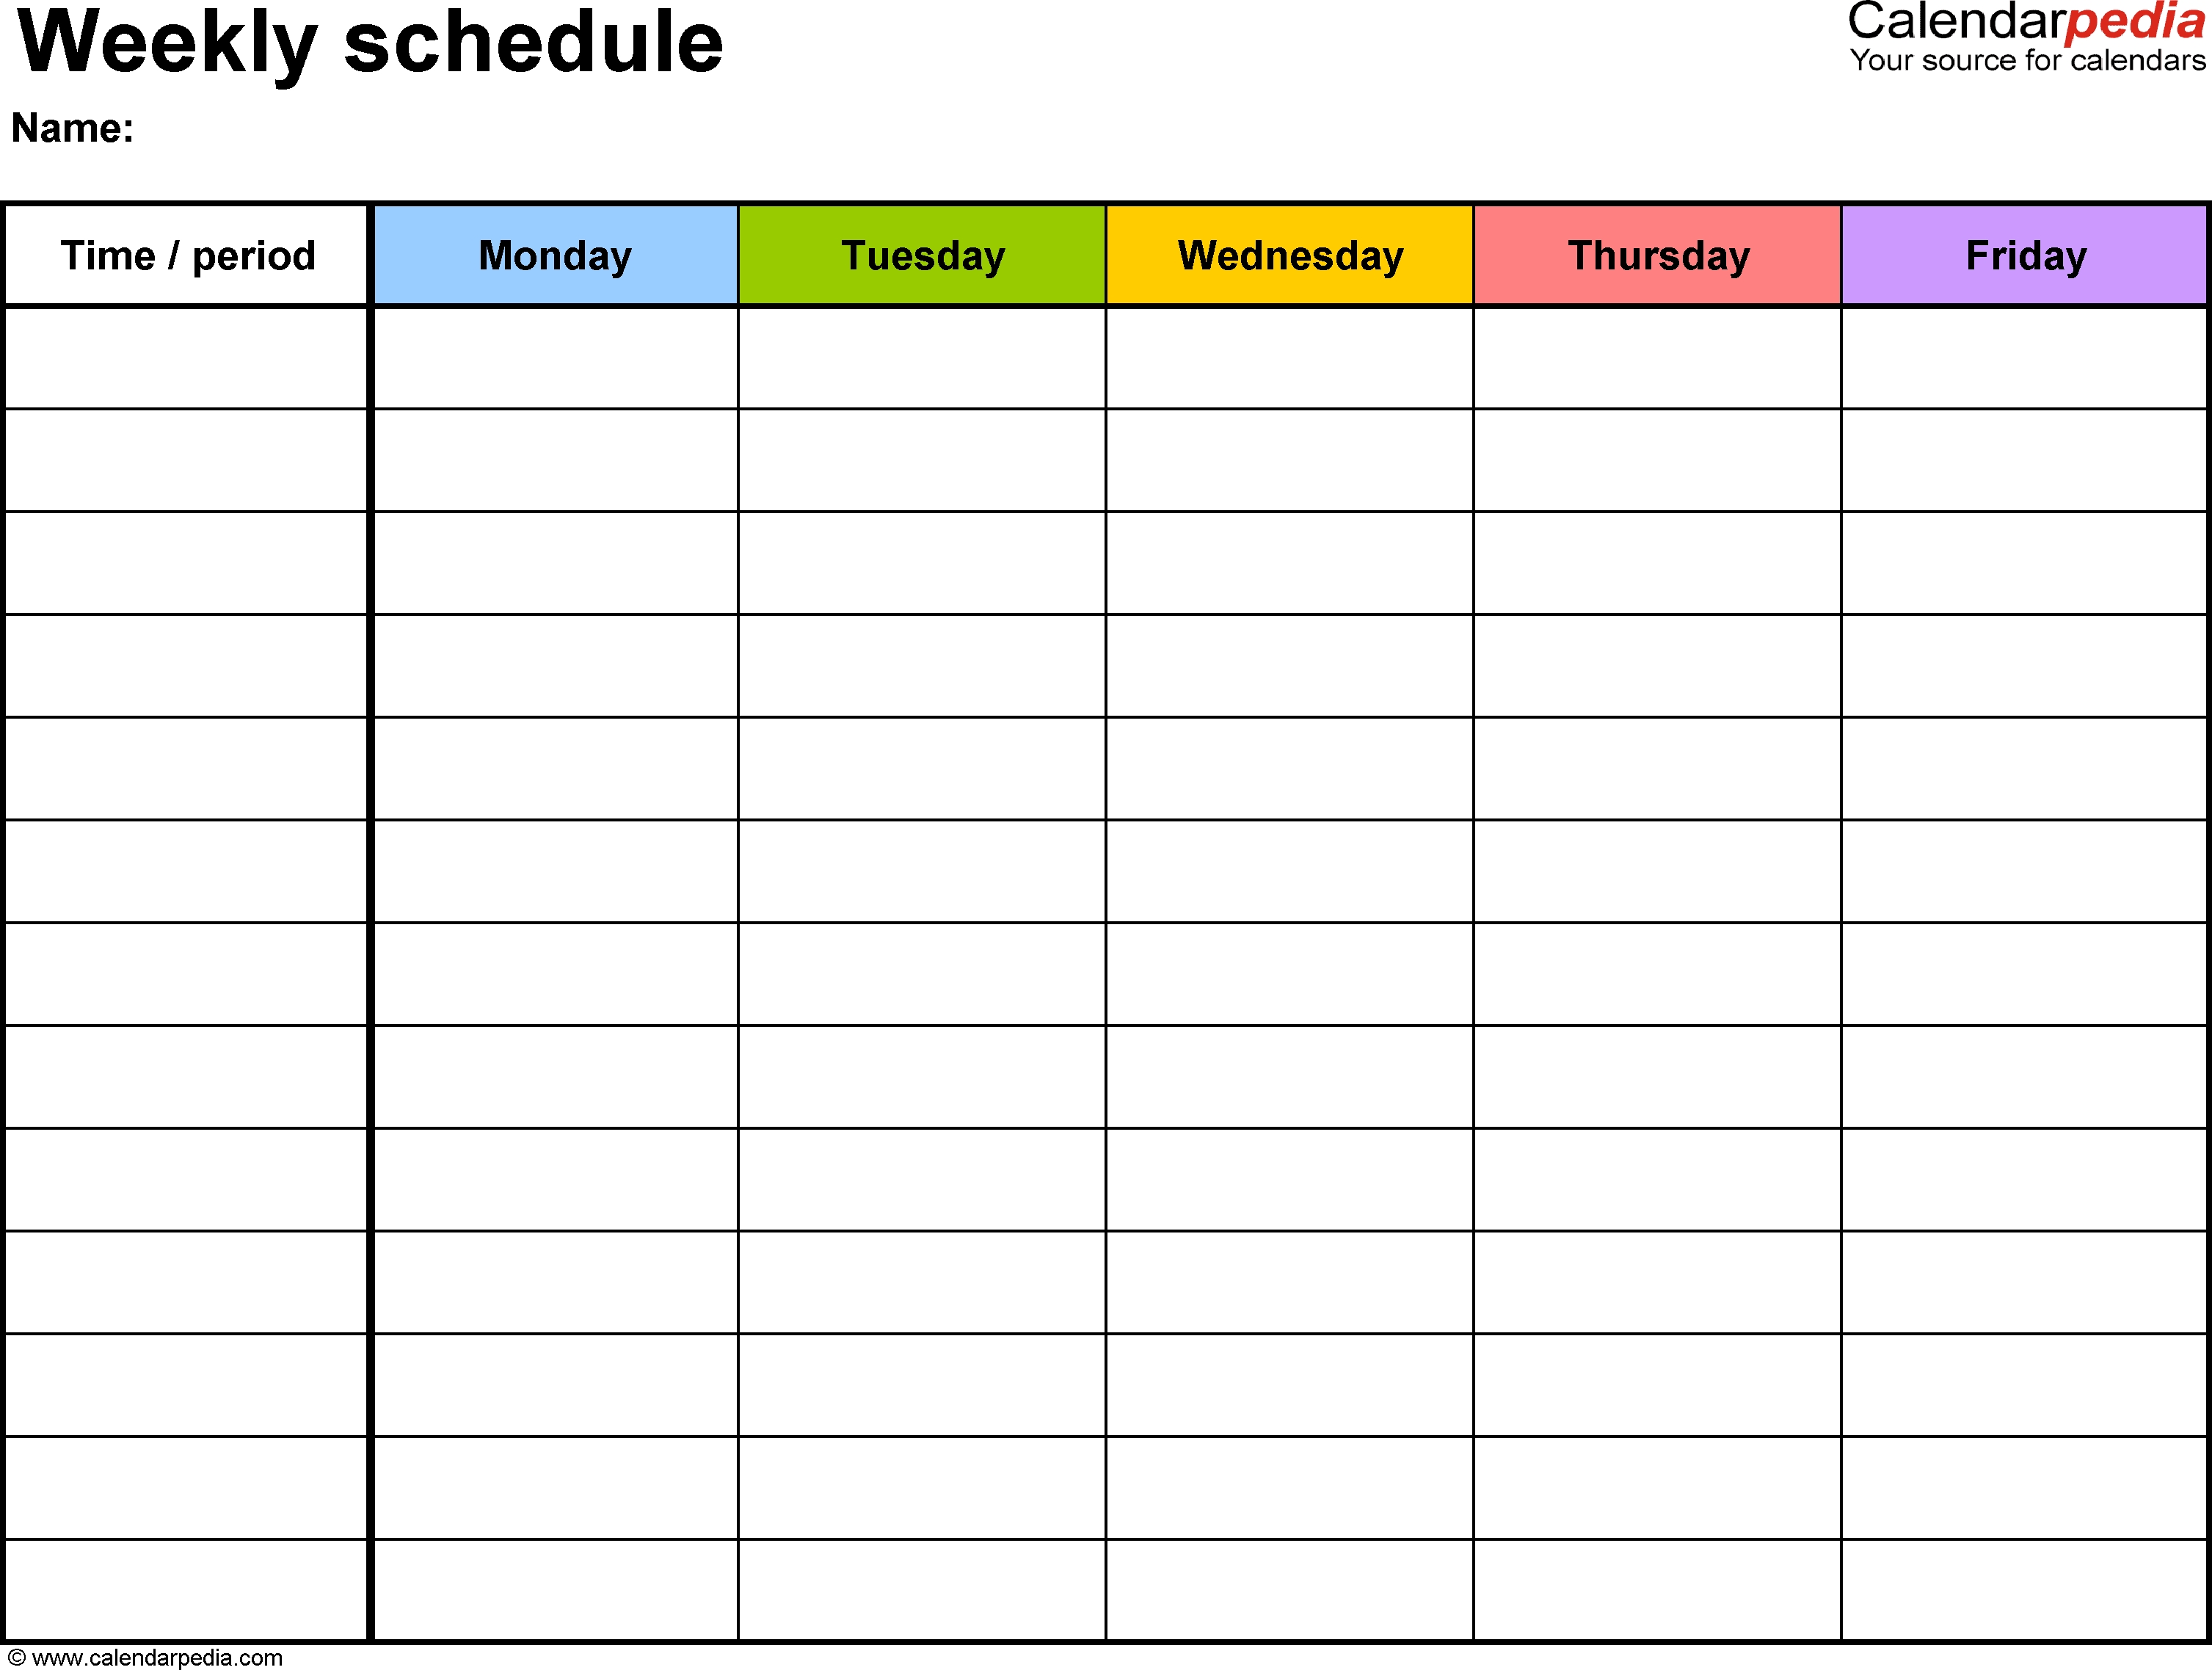 Free Weekly Schedule Templates For Excel - 18 Templates inside Printable Daily Schedule With Time